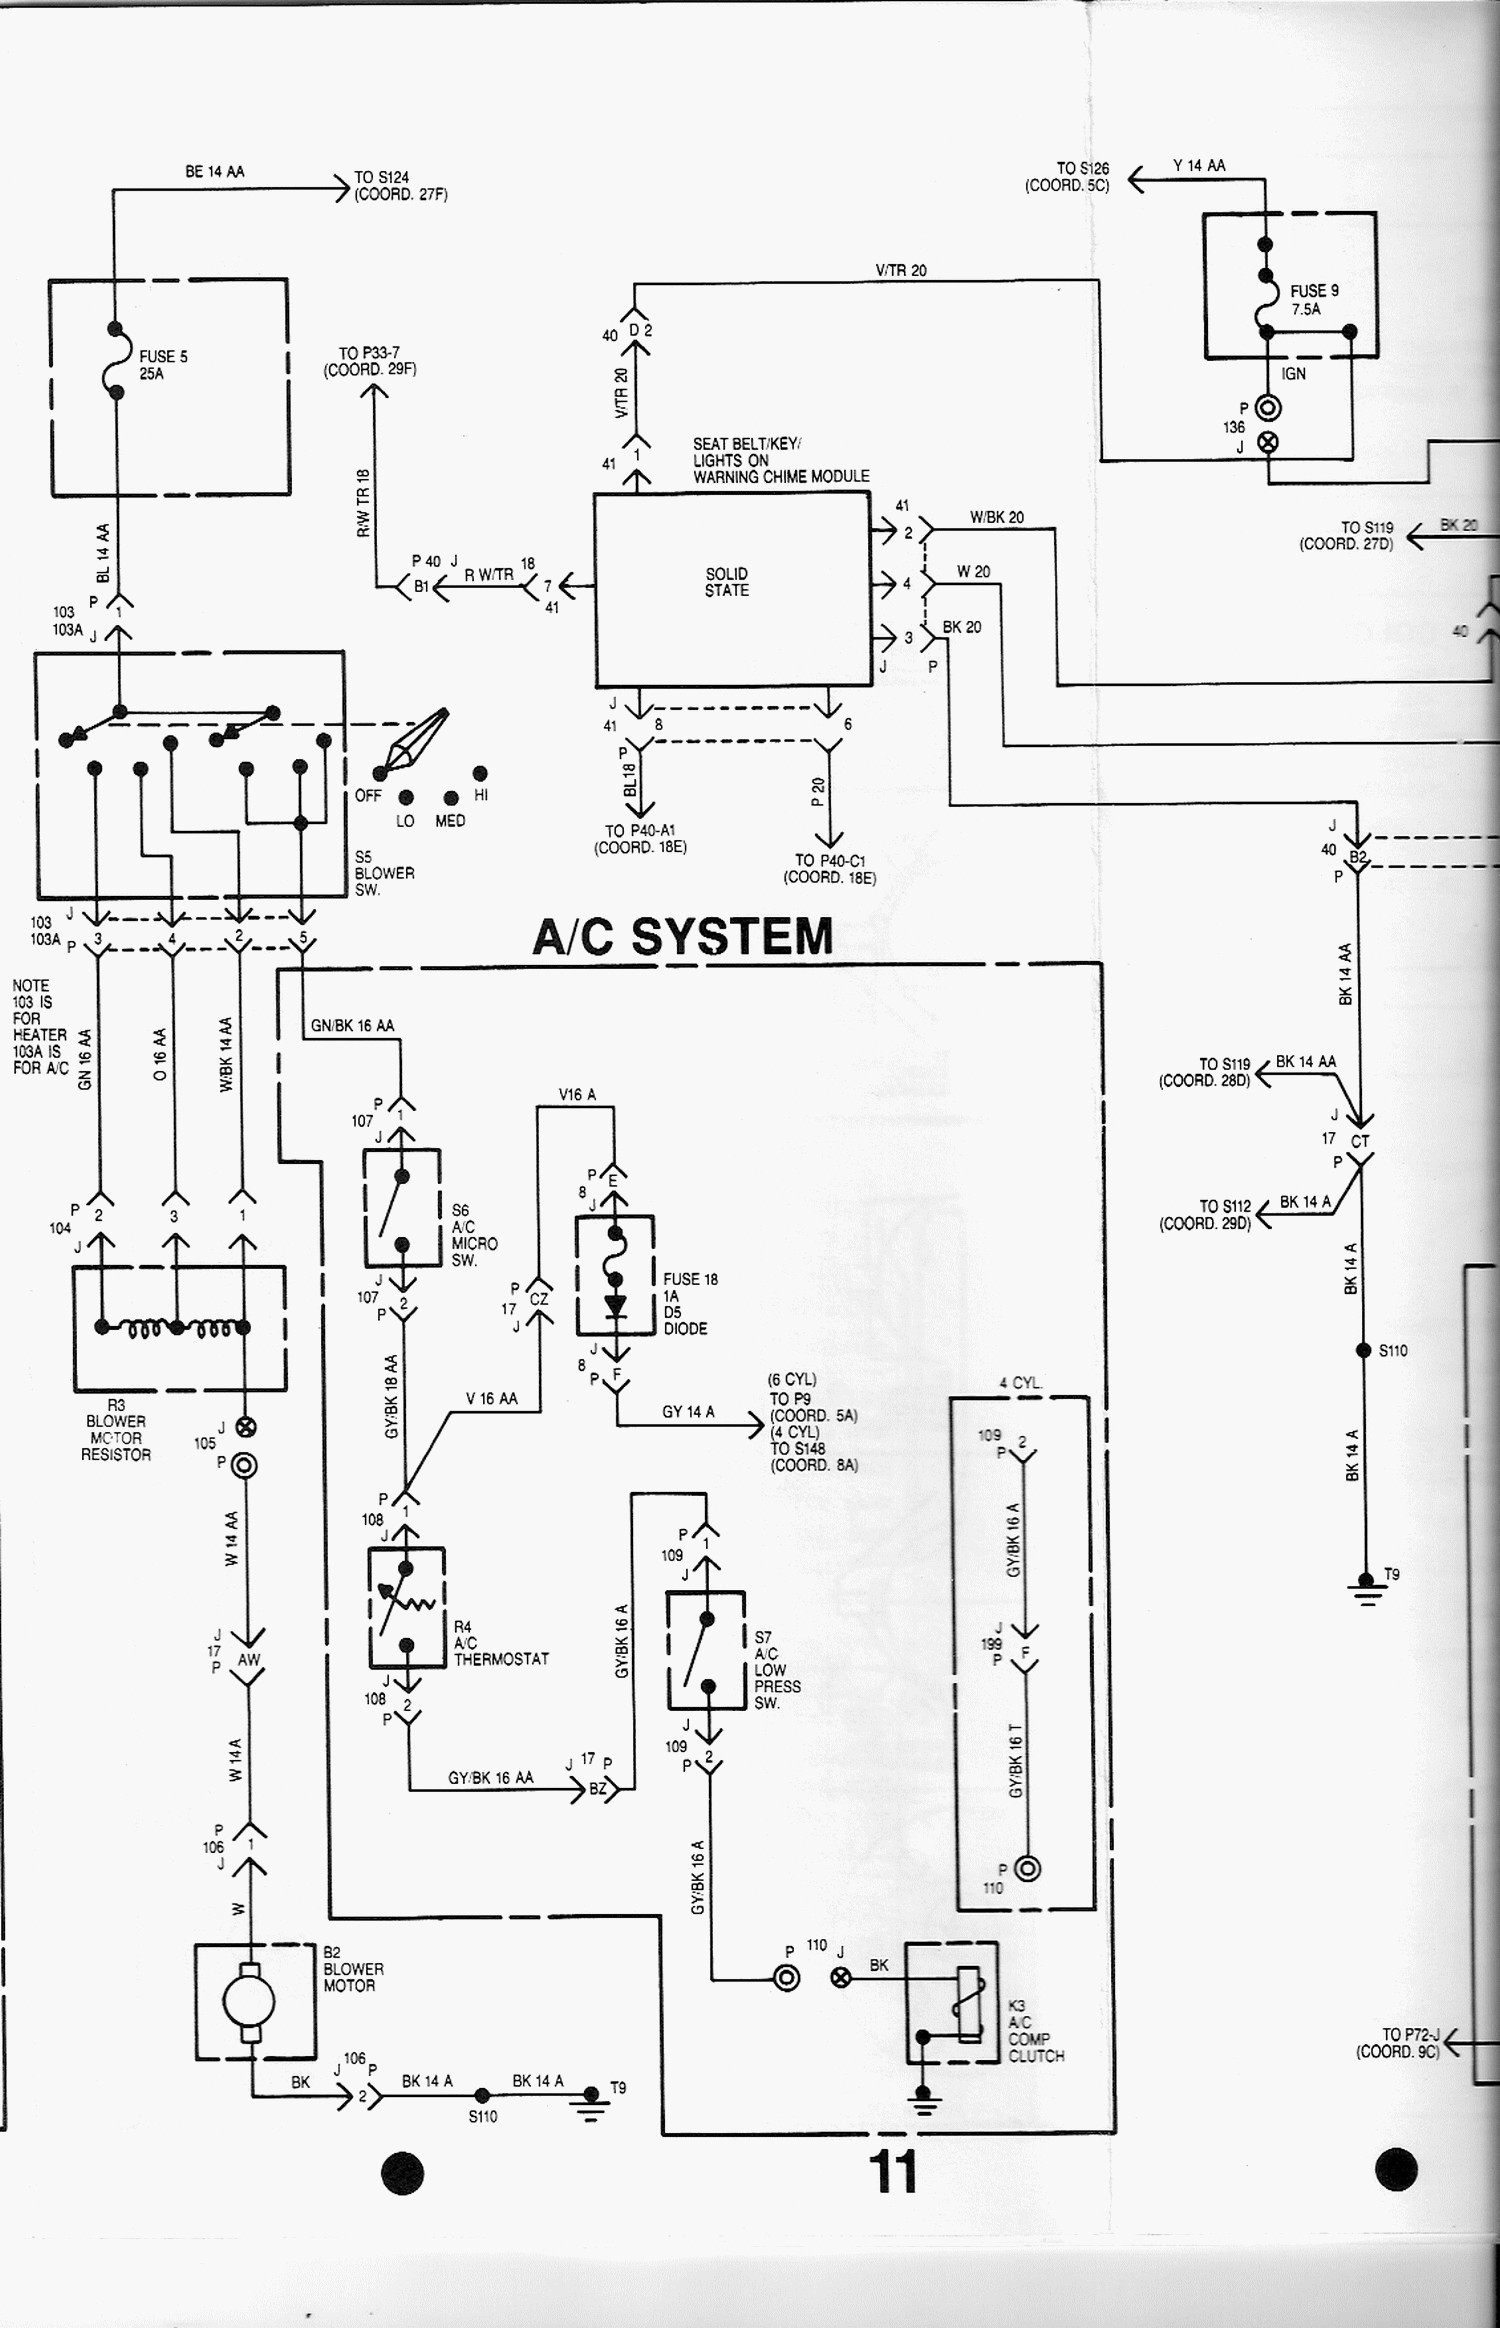 1985 amc eagle vacuum diagram